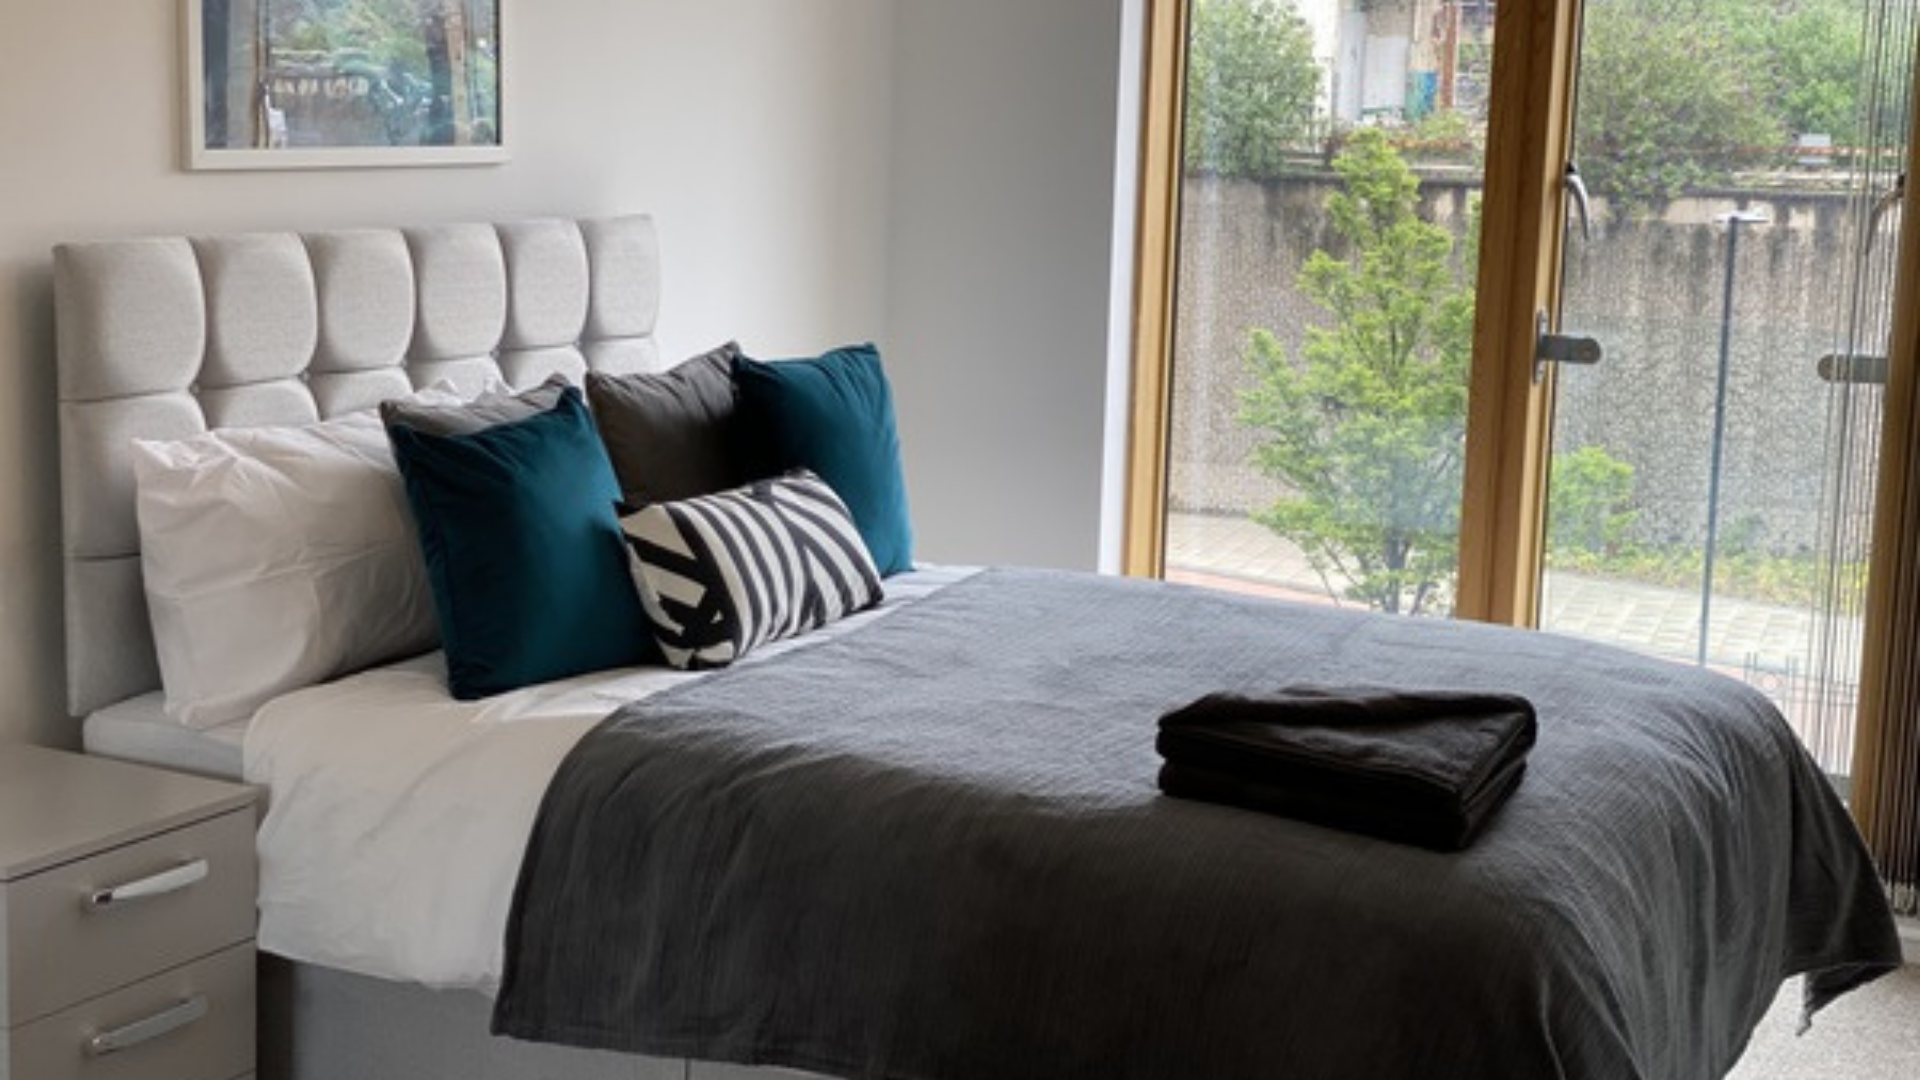 Double bed at Quarter Blonk Street Apartments, Centre, Sheffield - Citybase Apartments